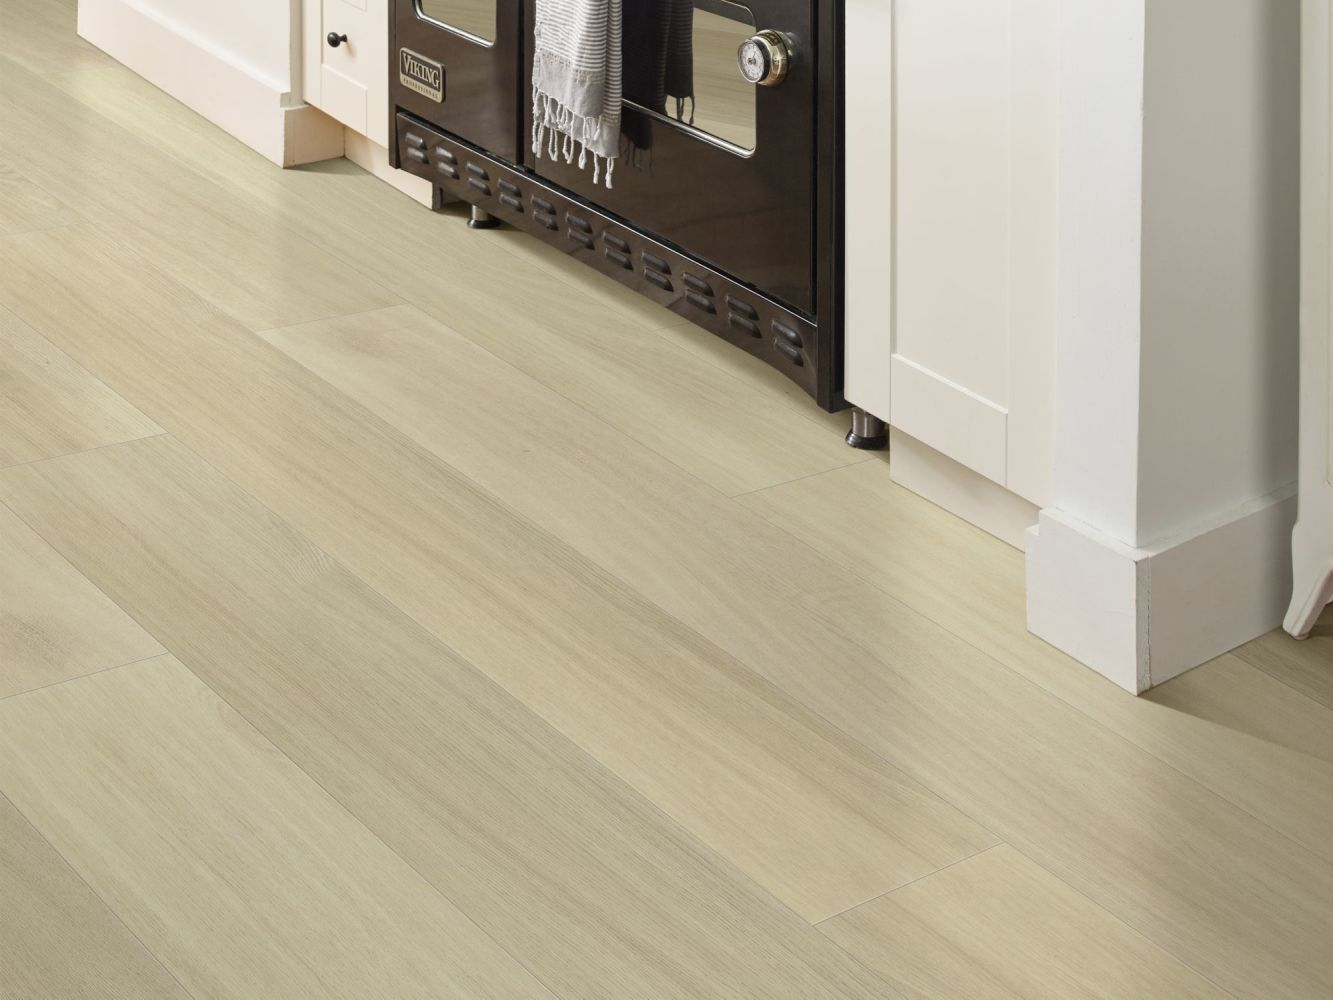 Shaw Floors SFA Awaken Hd+ Milled Natural Linen 01047_705SA